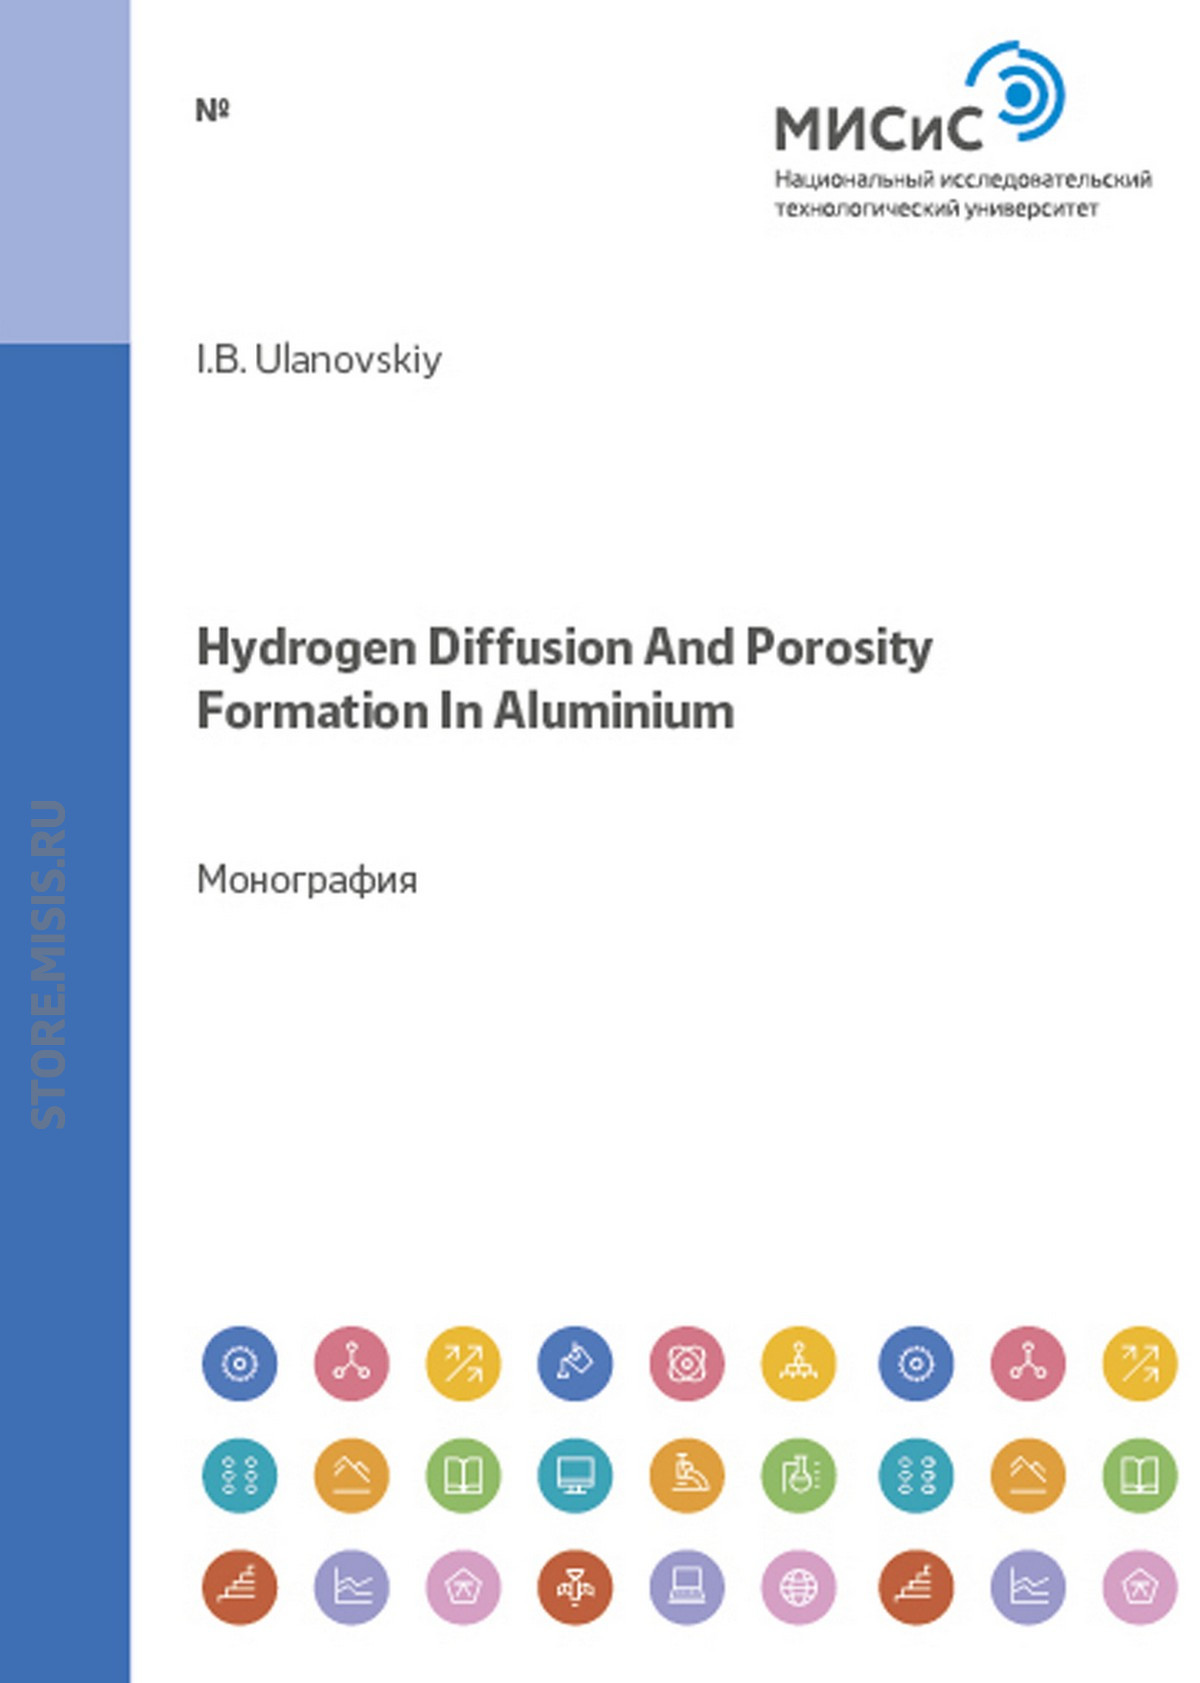 Hydrogen Diffusion and Porosity Formation In Aluminium